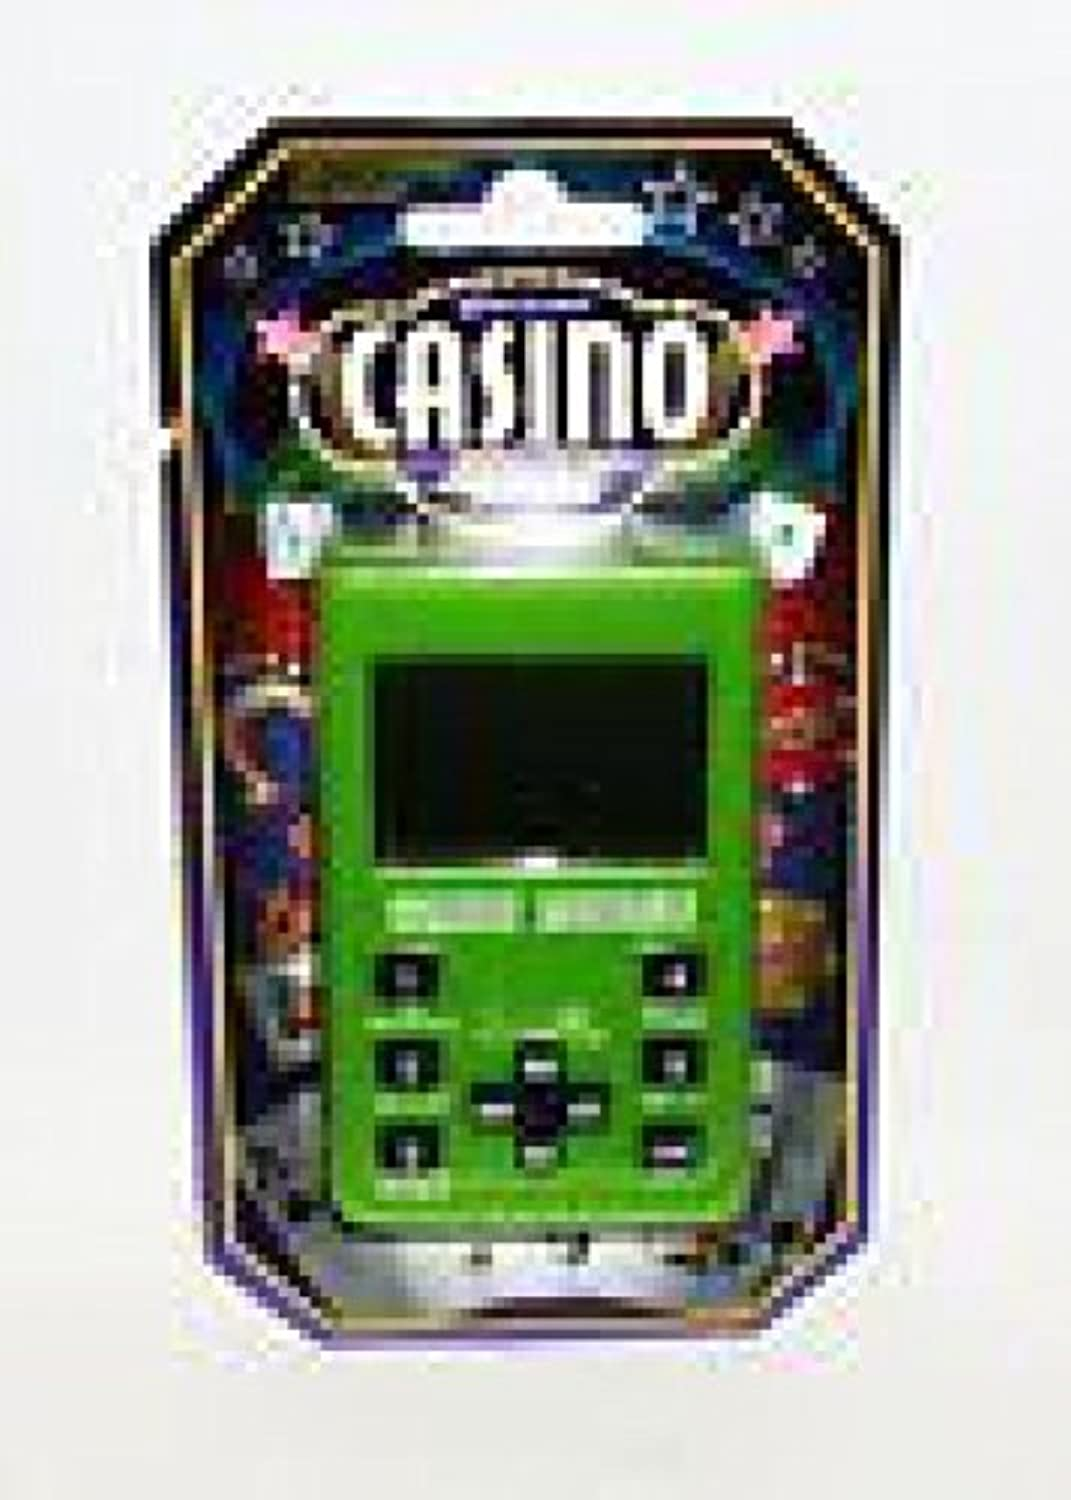 [Greenbrier]Greenbrier Hand Held Electronic Casino Poker Game Assorted Colors 4493674 [並行輸入品]